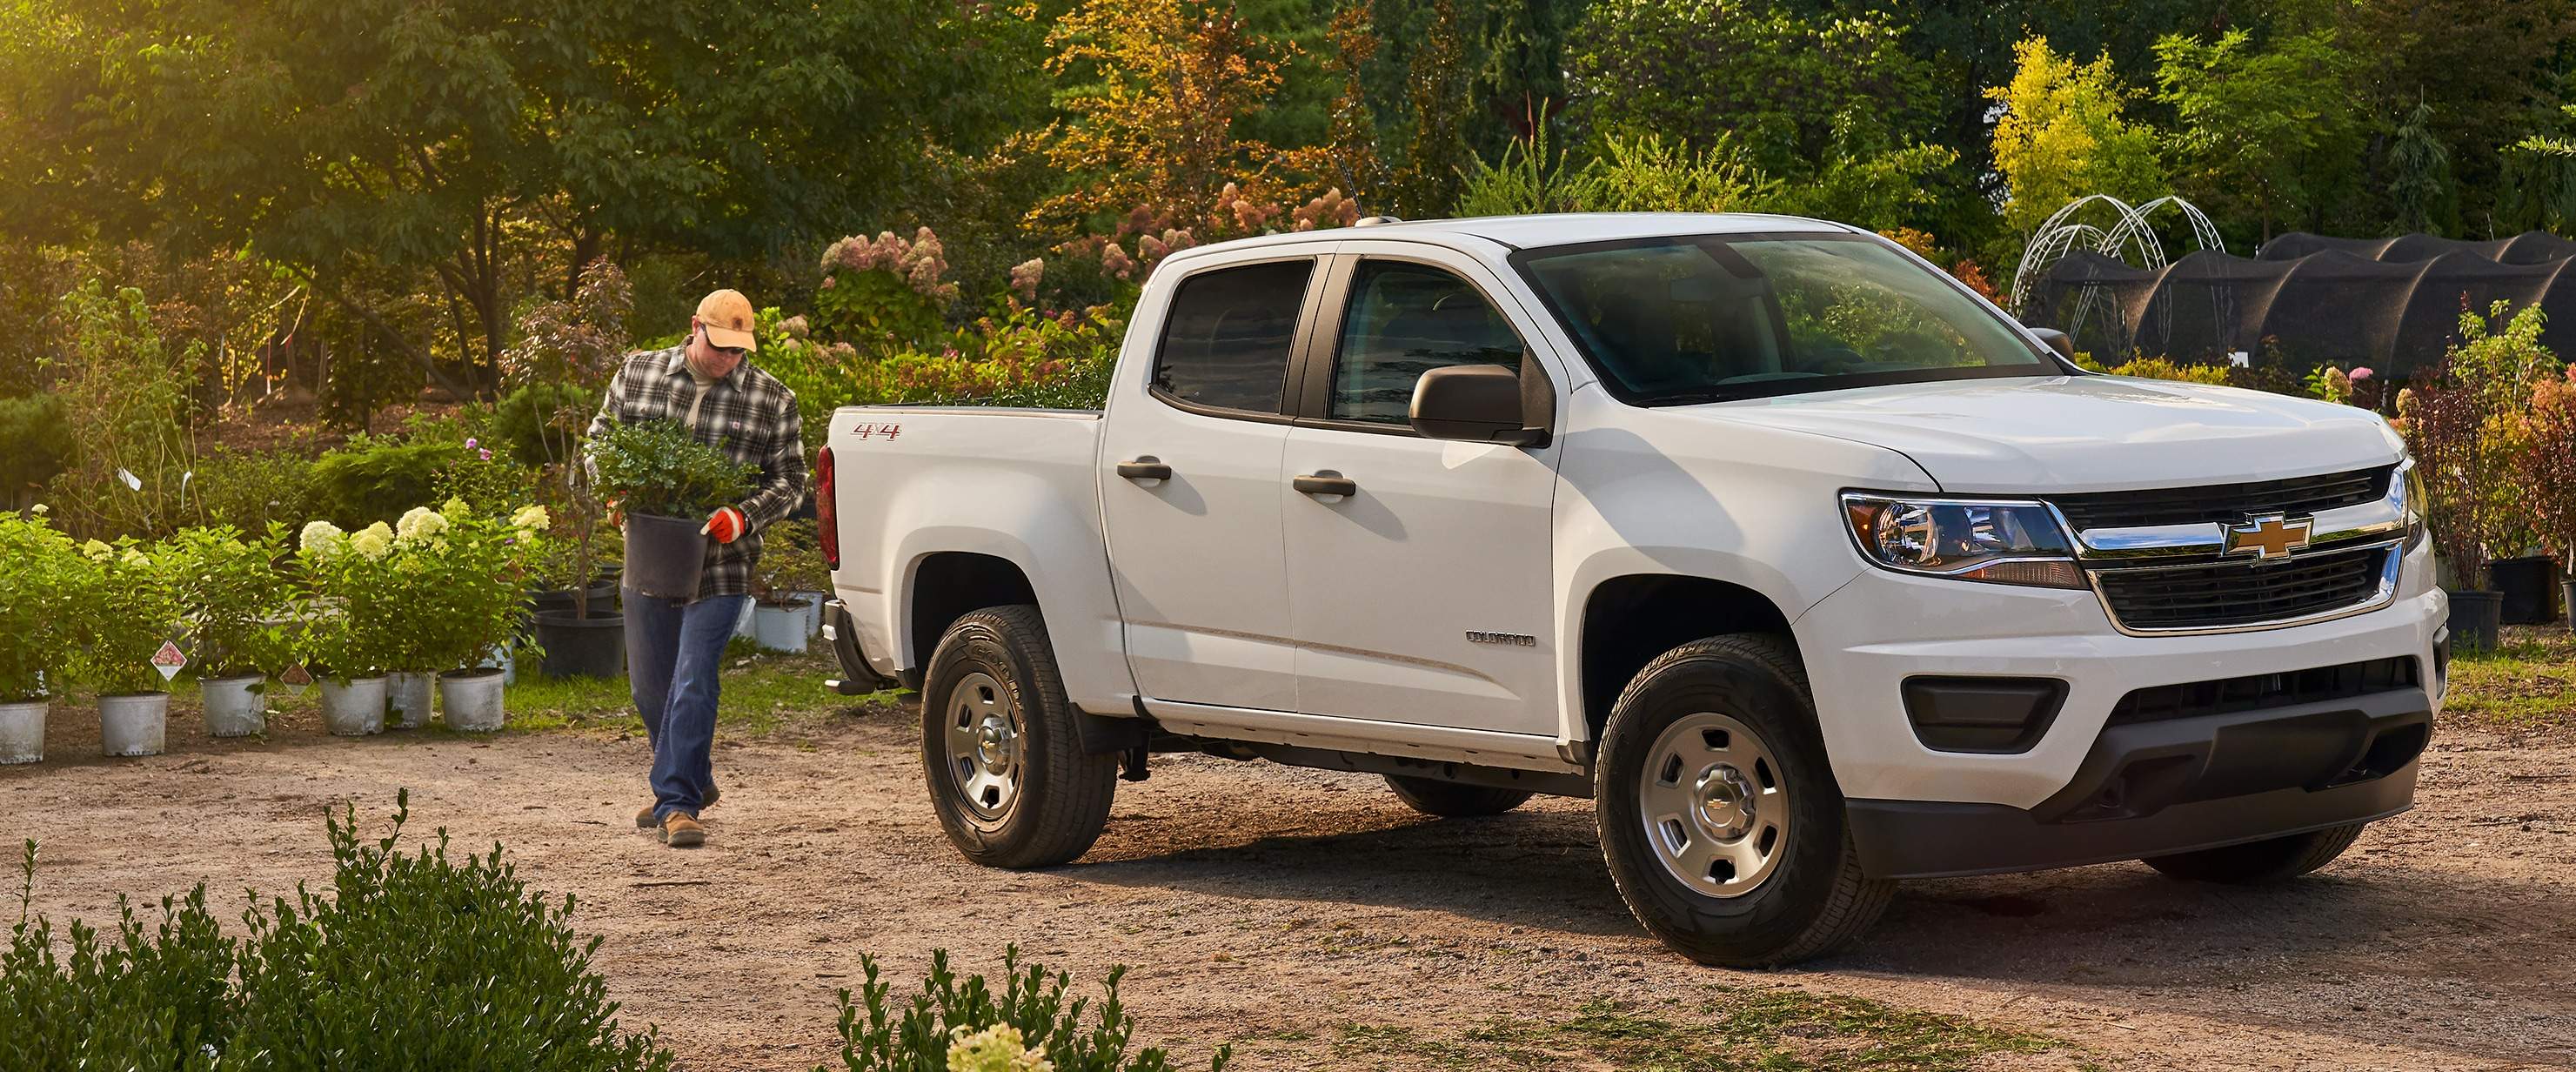 New Chevrolet Colorado For Sale In Baltimore Md Bob Bell Chevrolet